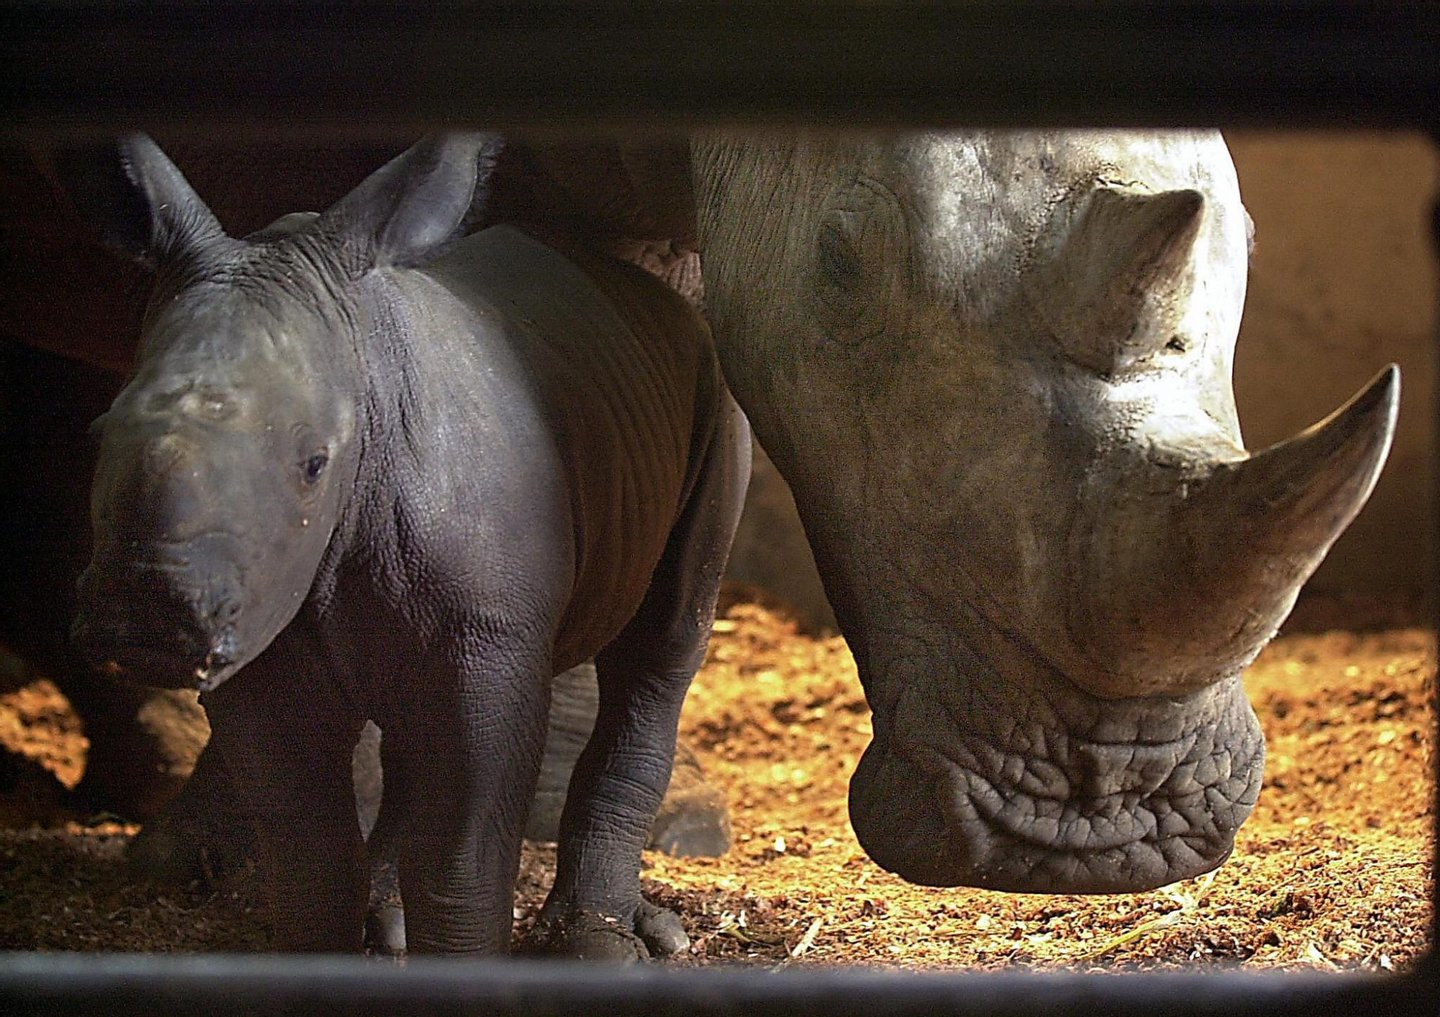 """A baby African white rhino (Ceratotherium simum) nicknamed """"Merdeka"""" stands next to his mother Hima, at the zoo in Bogor in West Java, 19 August 2003. The 50kg Merdeka (freedom) was born last 15 August. AFP PHOTO/Bay ISMOYO (Photo credit should read BAY ISMOYO/AFP/Getty Images)"""